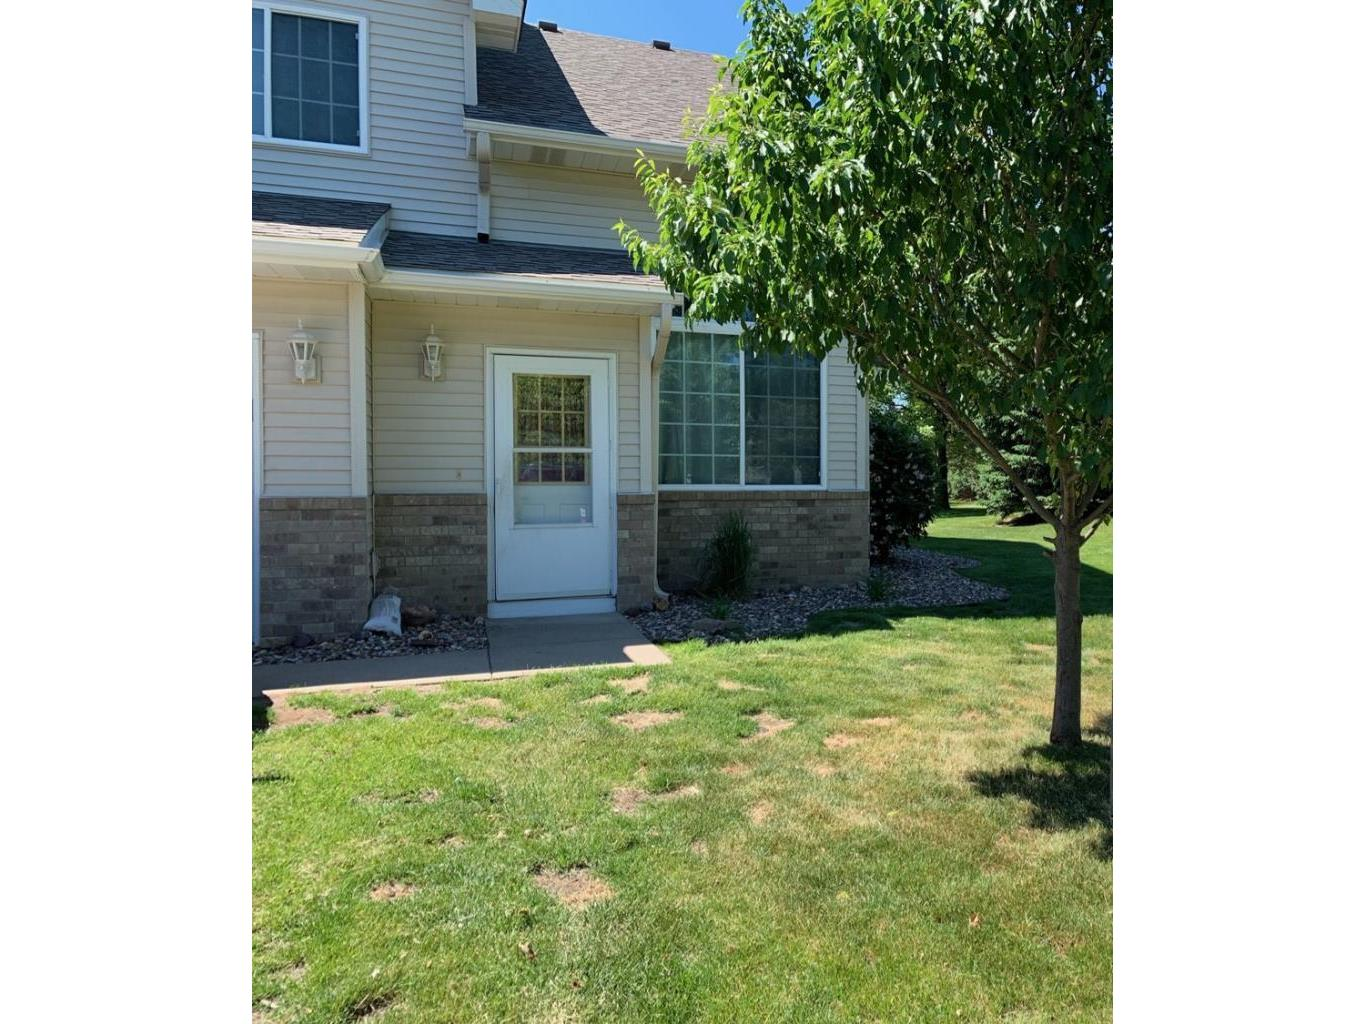 8846 92nd Street S, Cottage Grove, MN 55016 | MLS: 5250565 ...